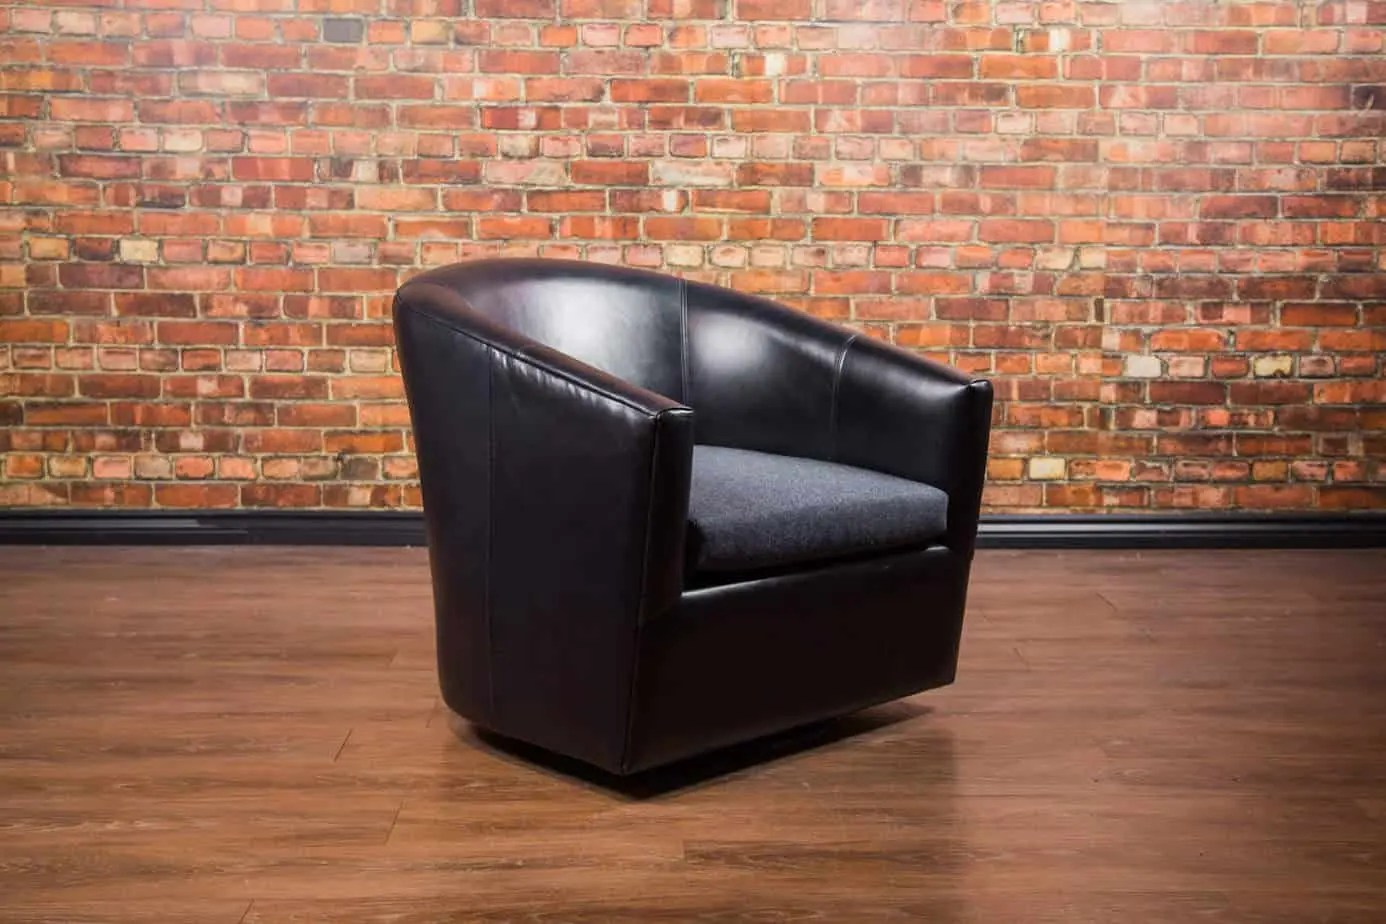 Leather Recliner Chairs Canada The Treck Leather Swivel Chair Collection Canada 39s Boss